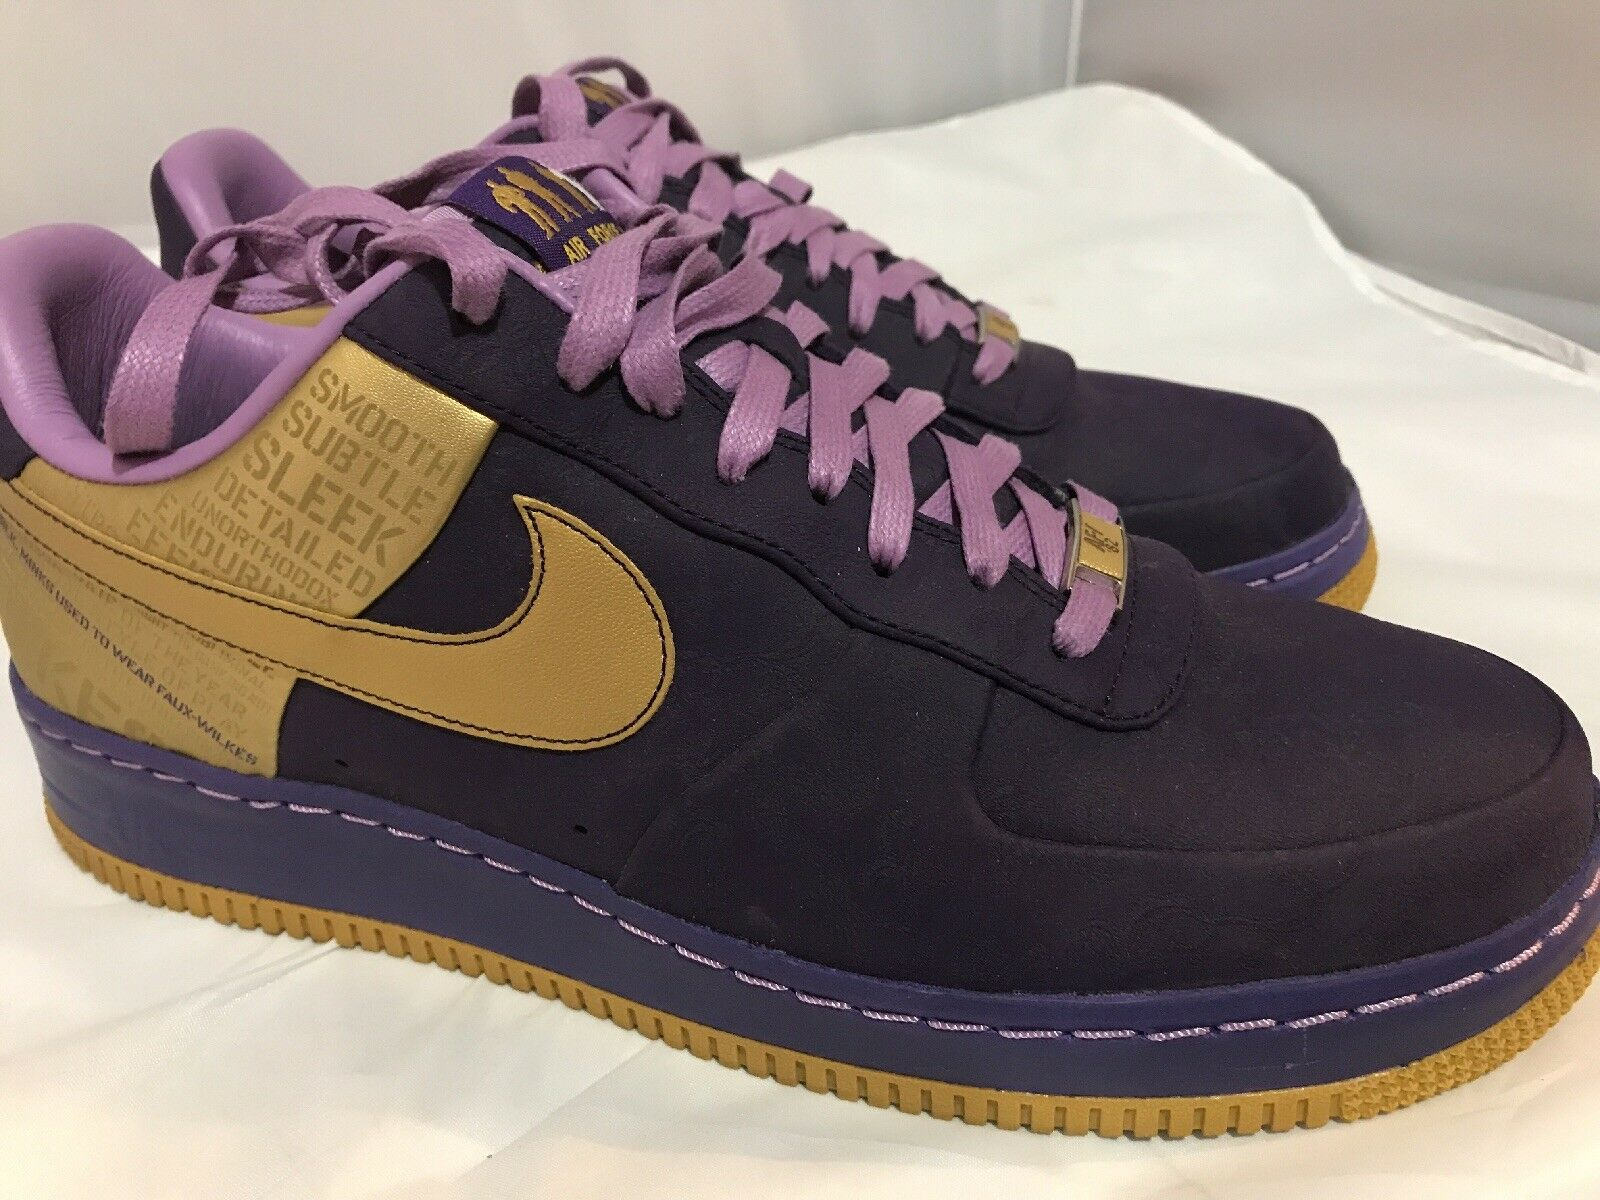 quality design 7ce10 474ae Viola 07 1 Supremo Lakers Force Anniversario Oro Nike Air Wilkes FY1qfcRw